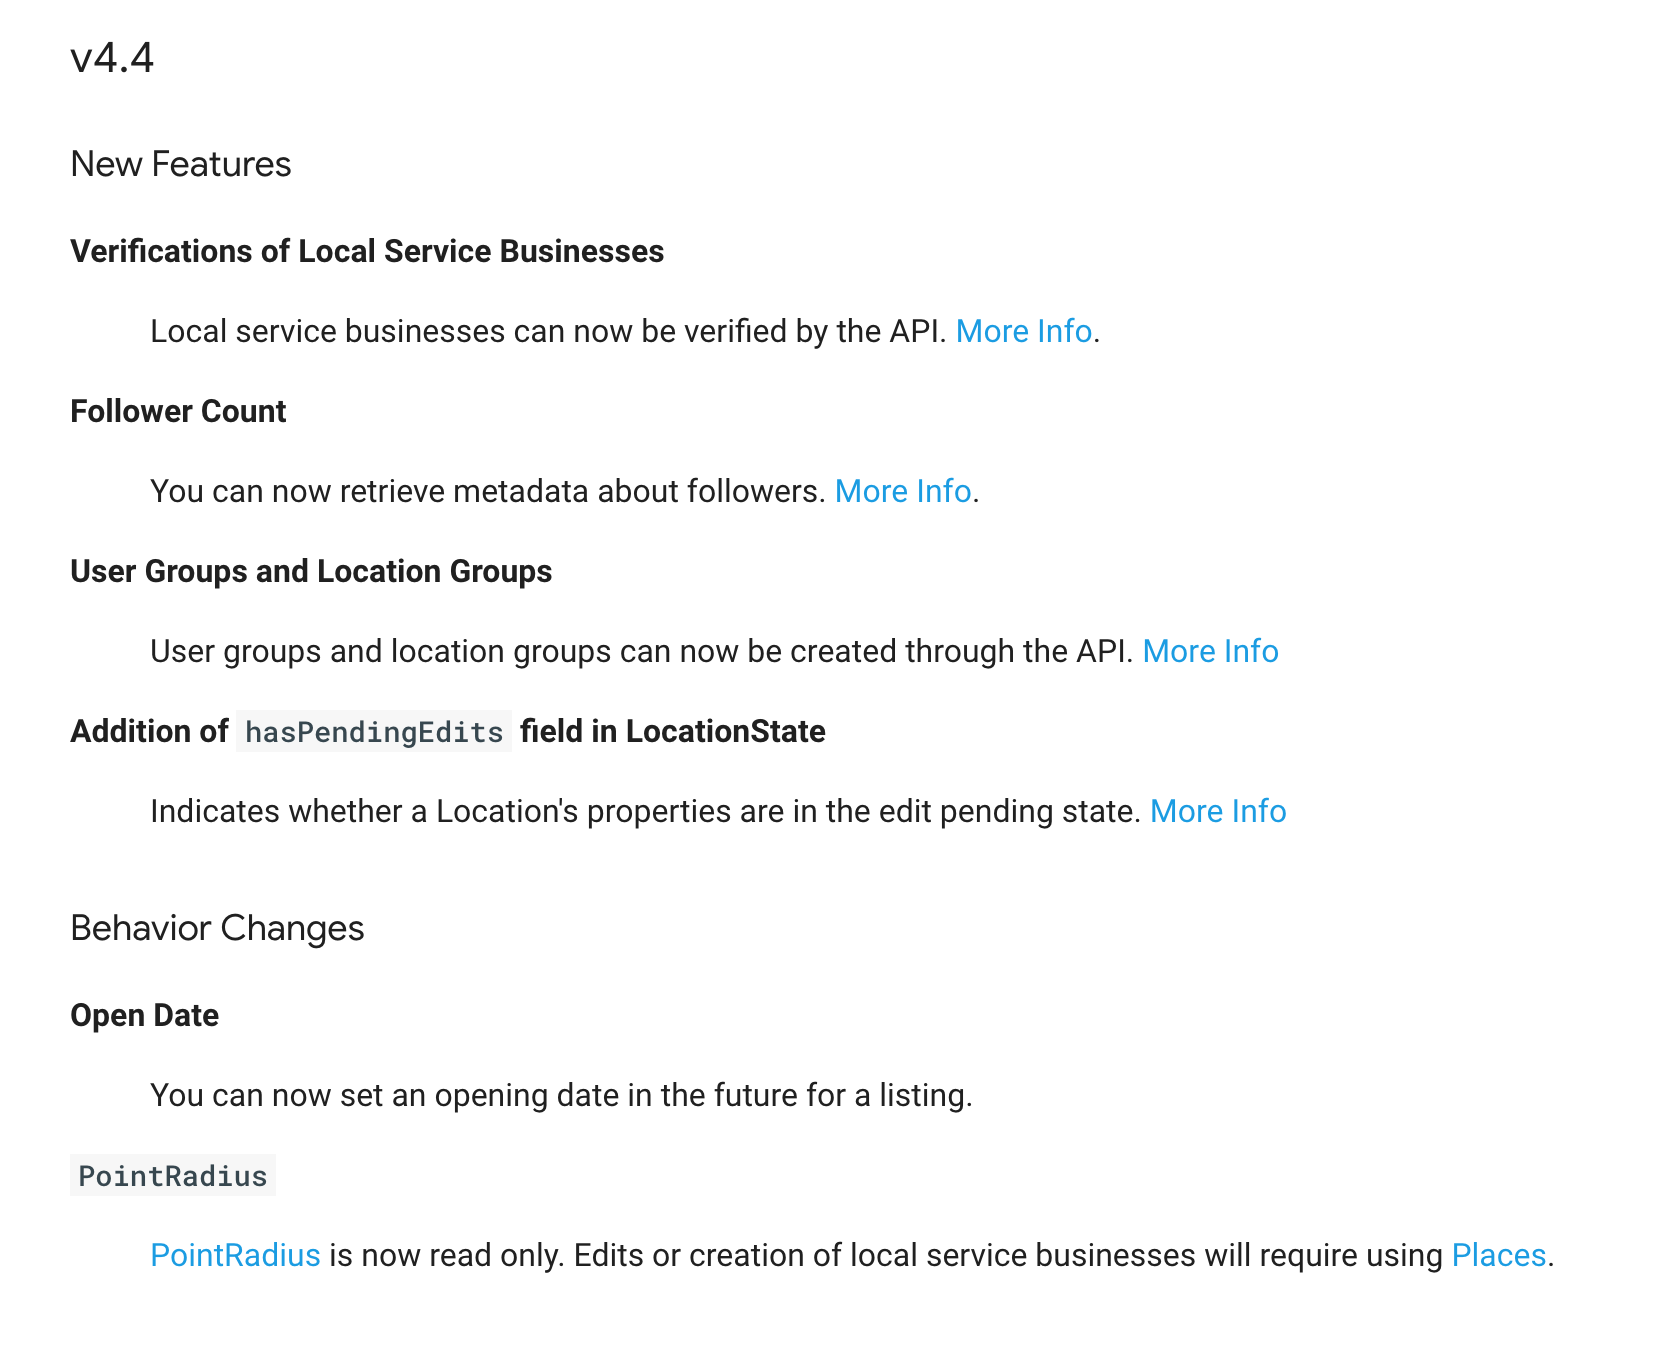 Google My Business API v4.4 Update